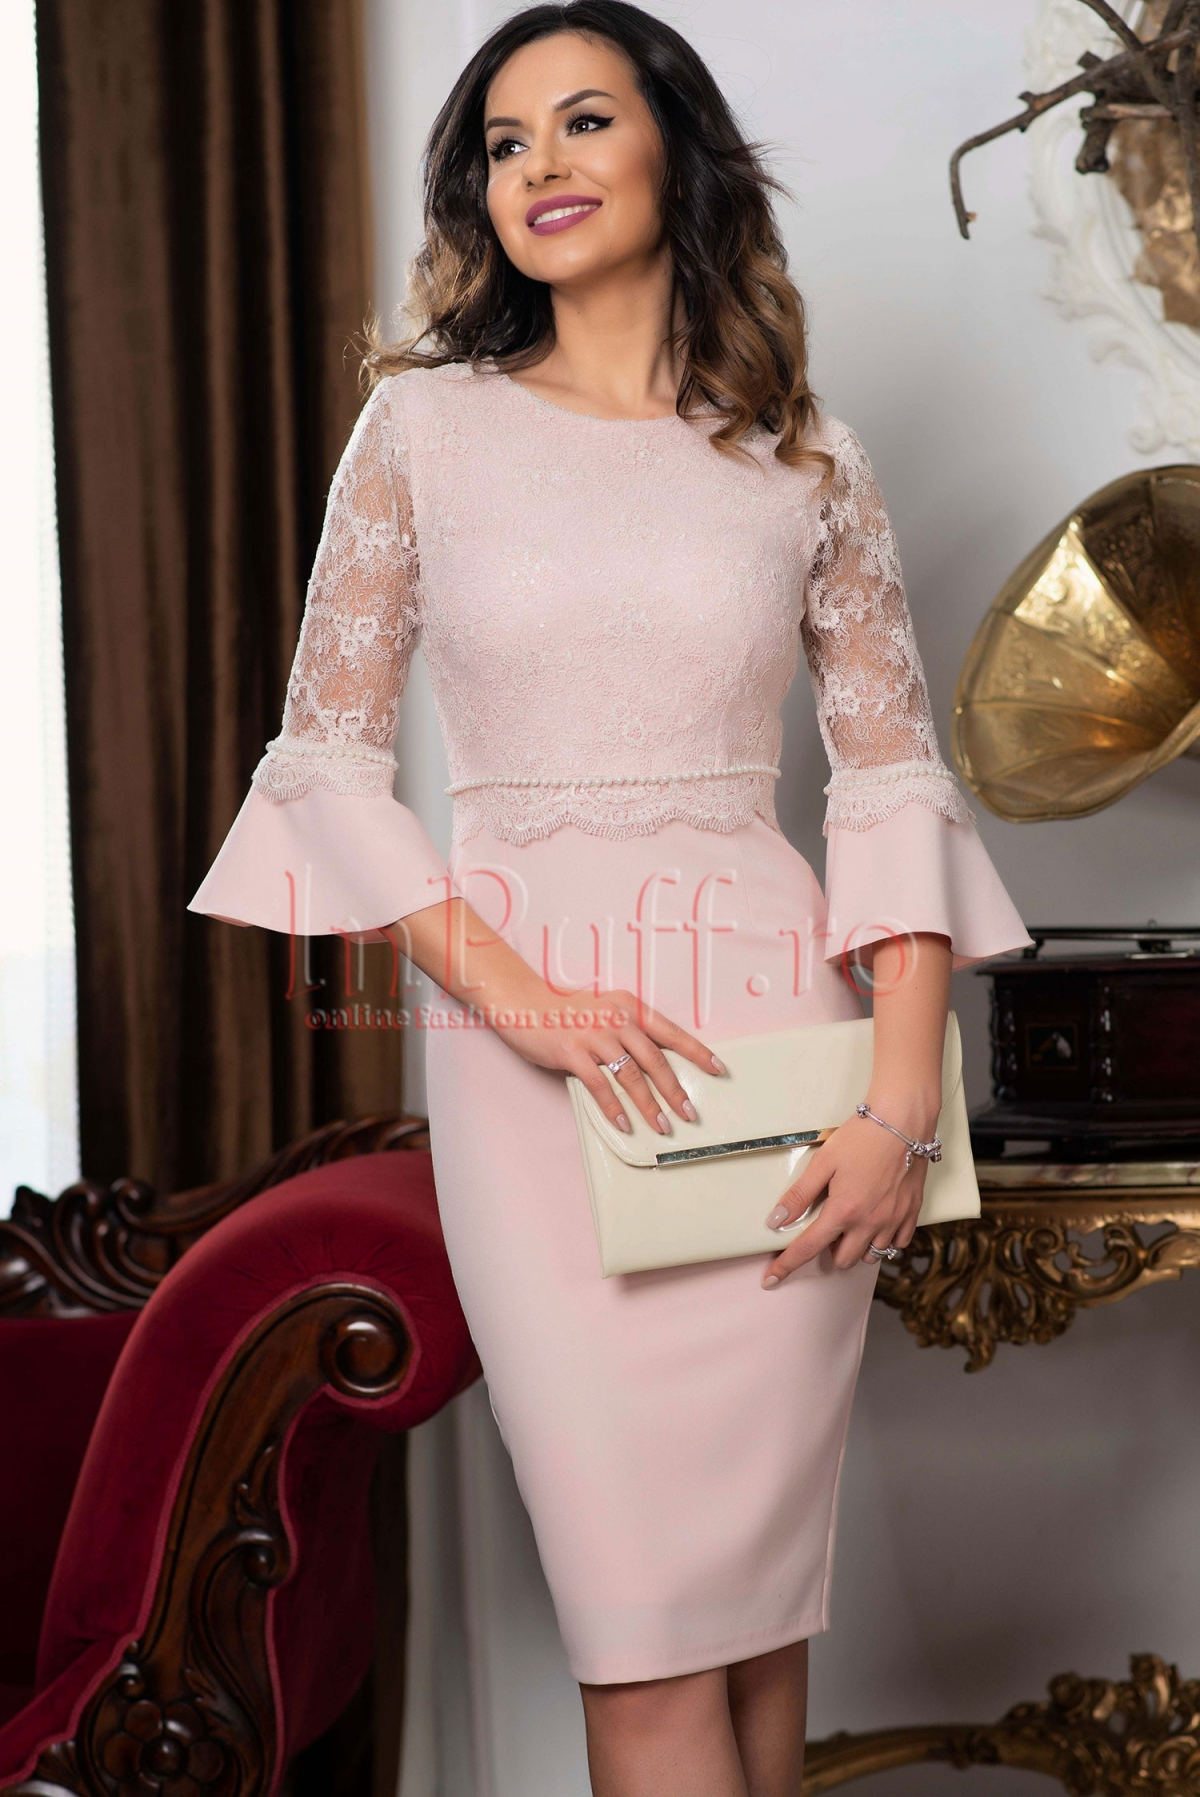 Rochie MBG roz pal cu broderie si perle aplicate MBG-Collection